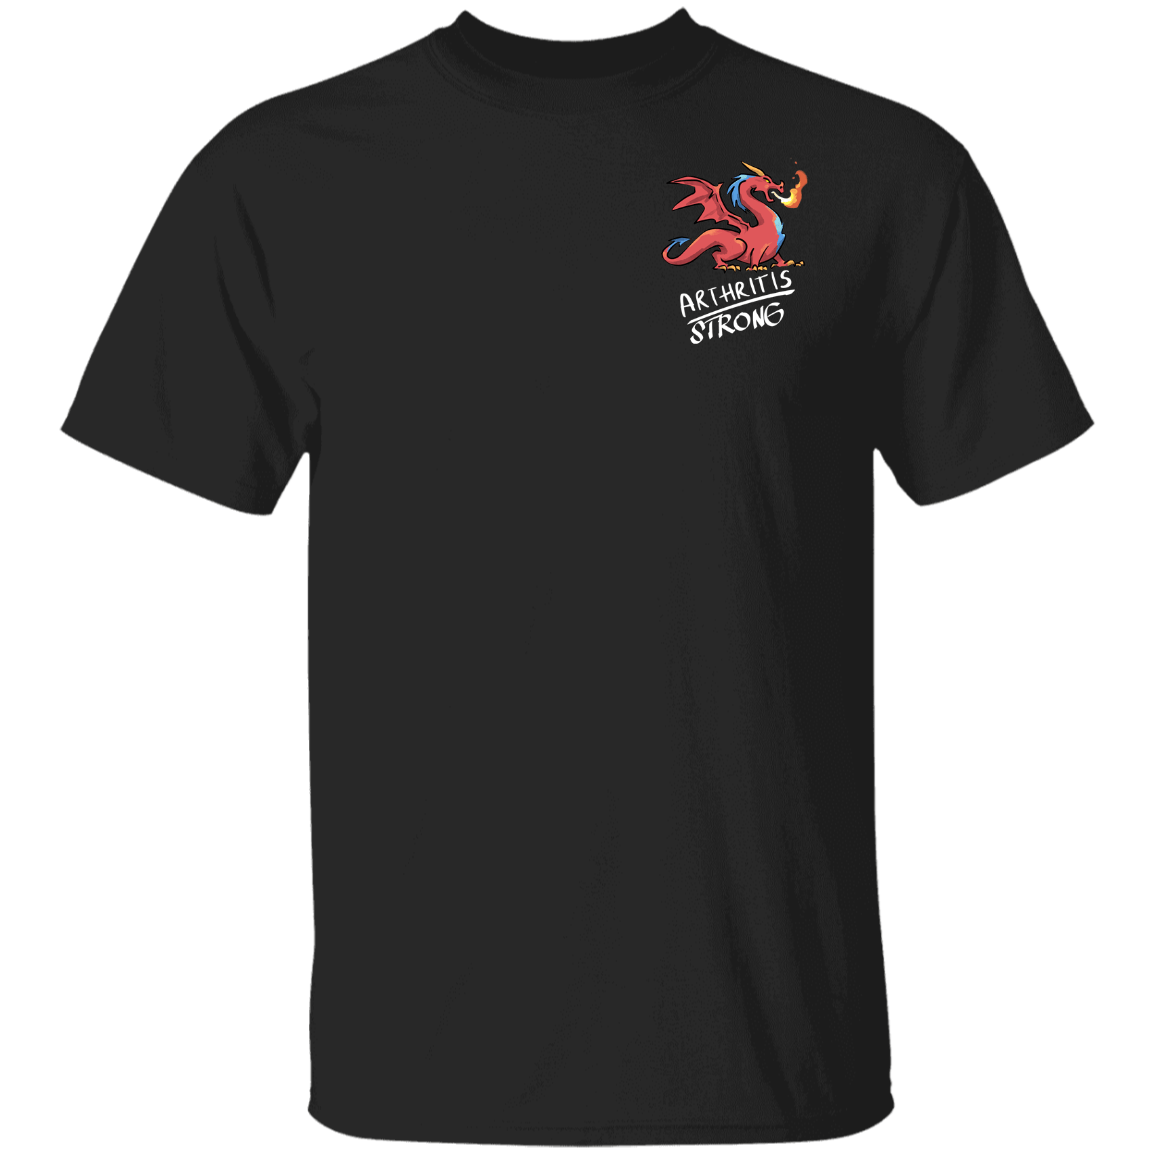 Arthritis Strong Dragon Shirts and Hoodie (Front pocket only) - The Unchargeables